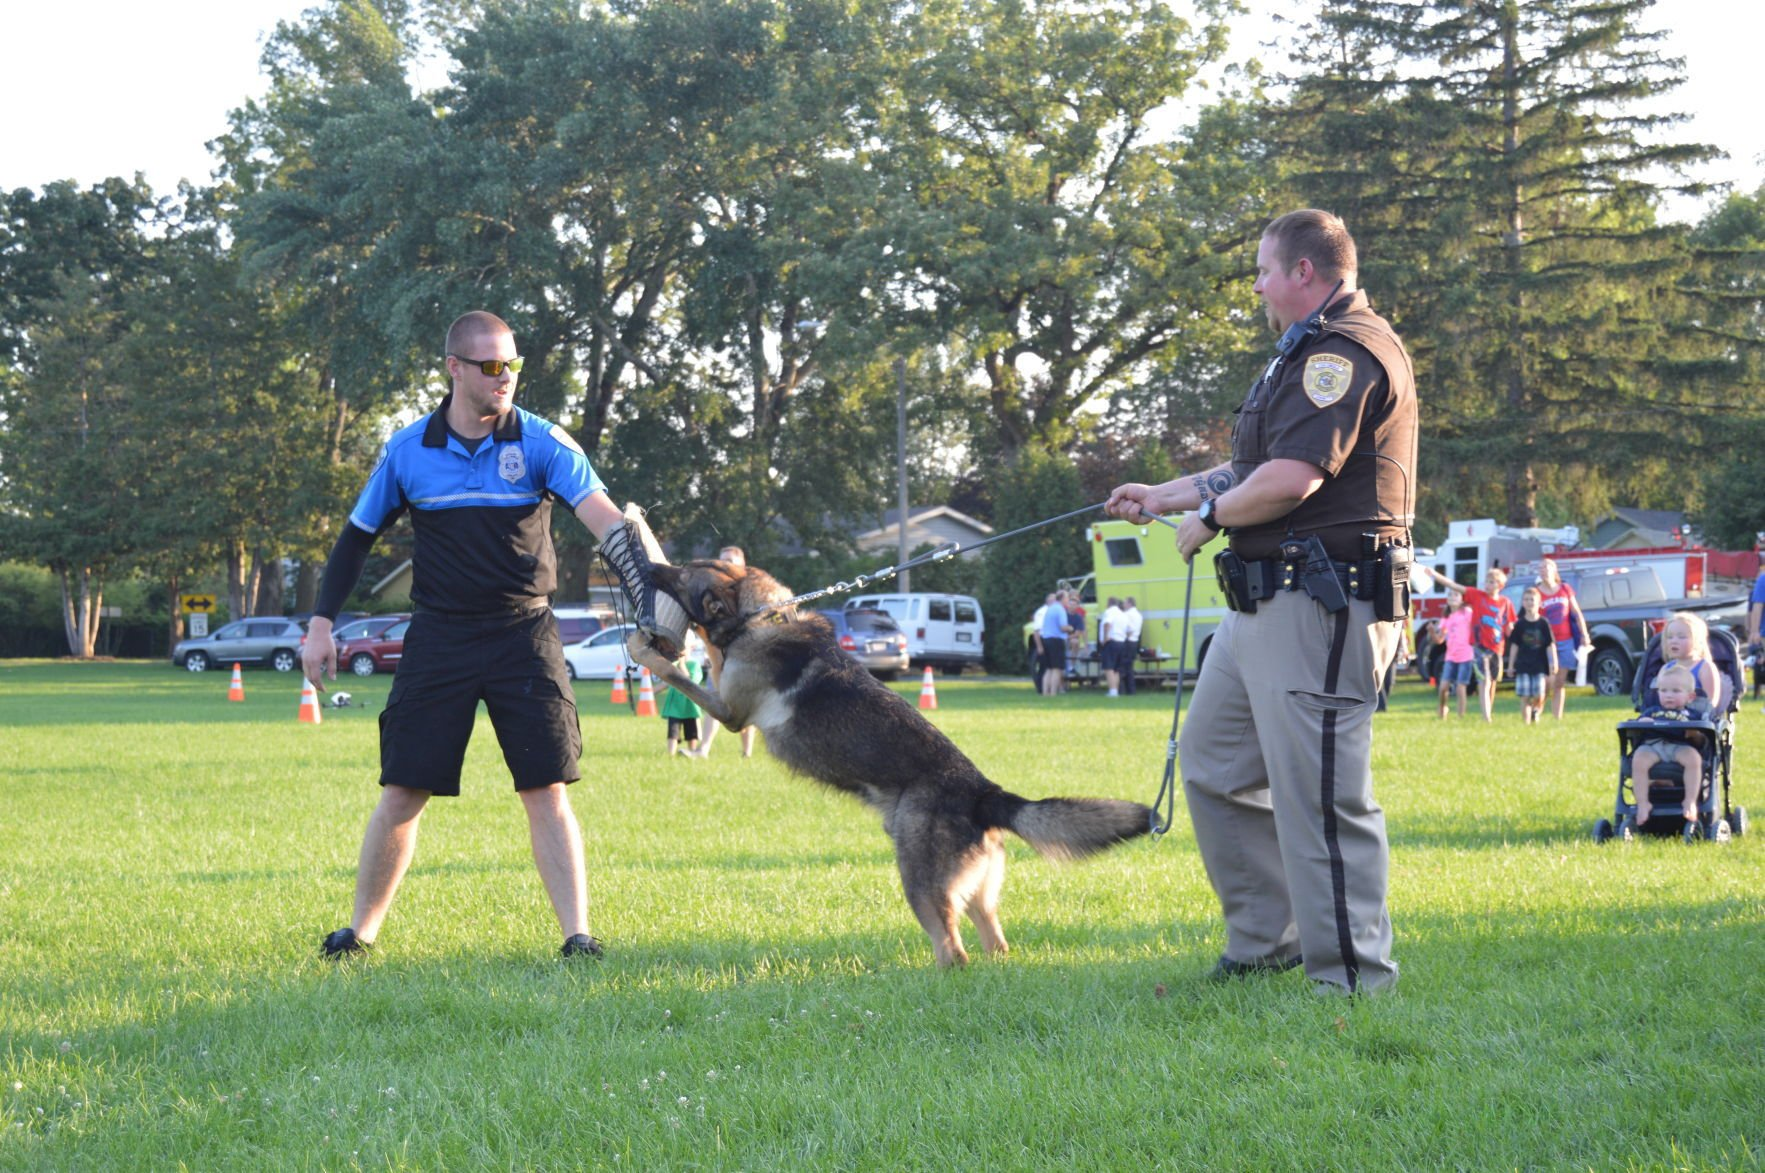 RPD to celebrate 30th year of National Night Out